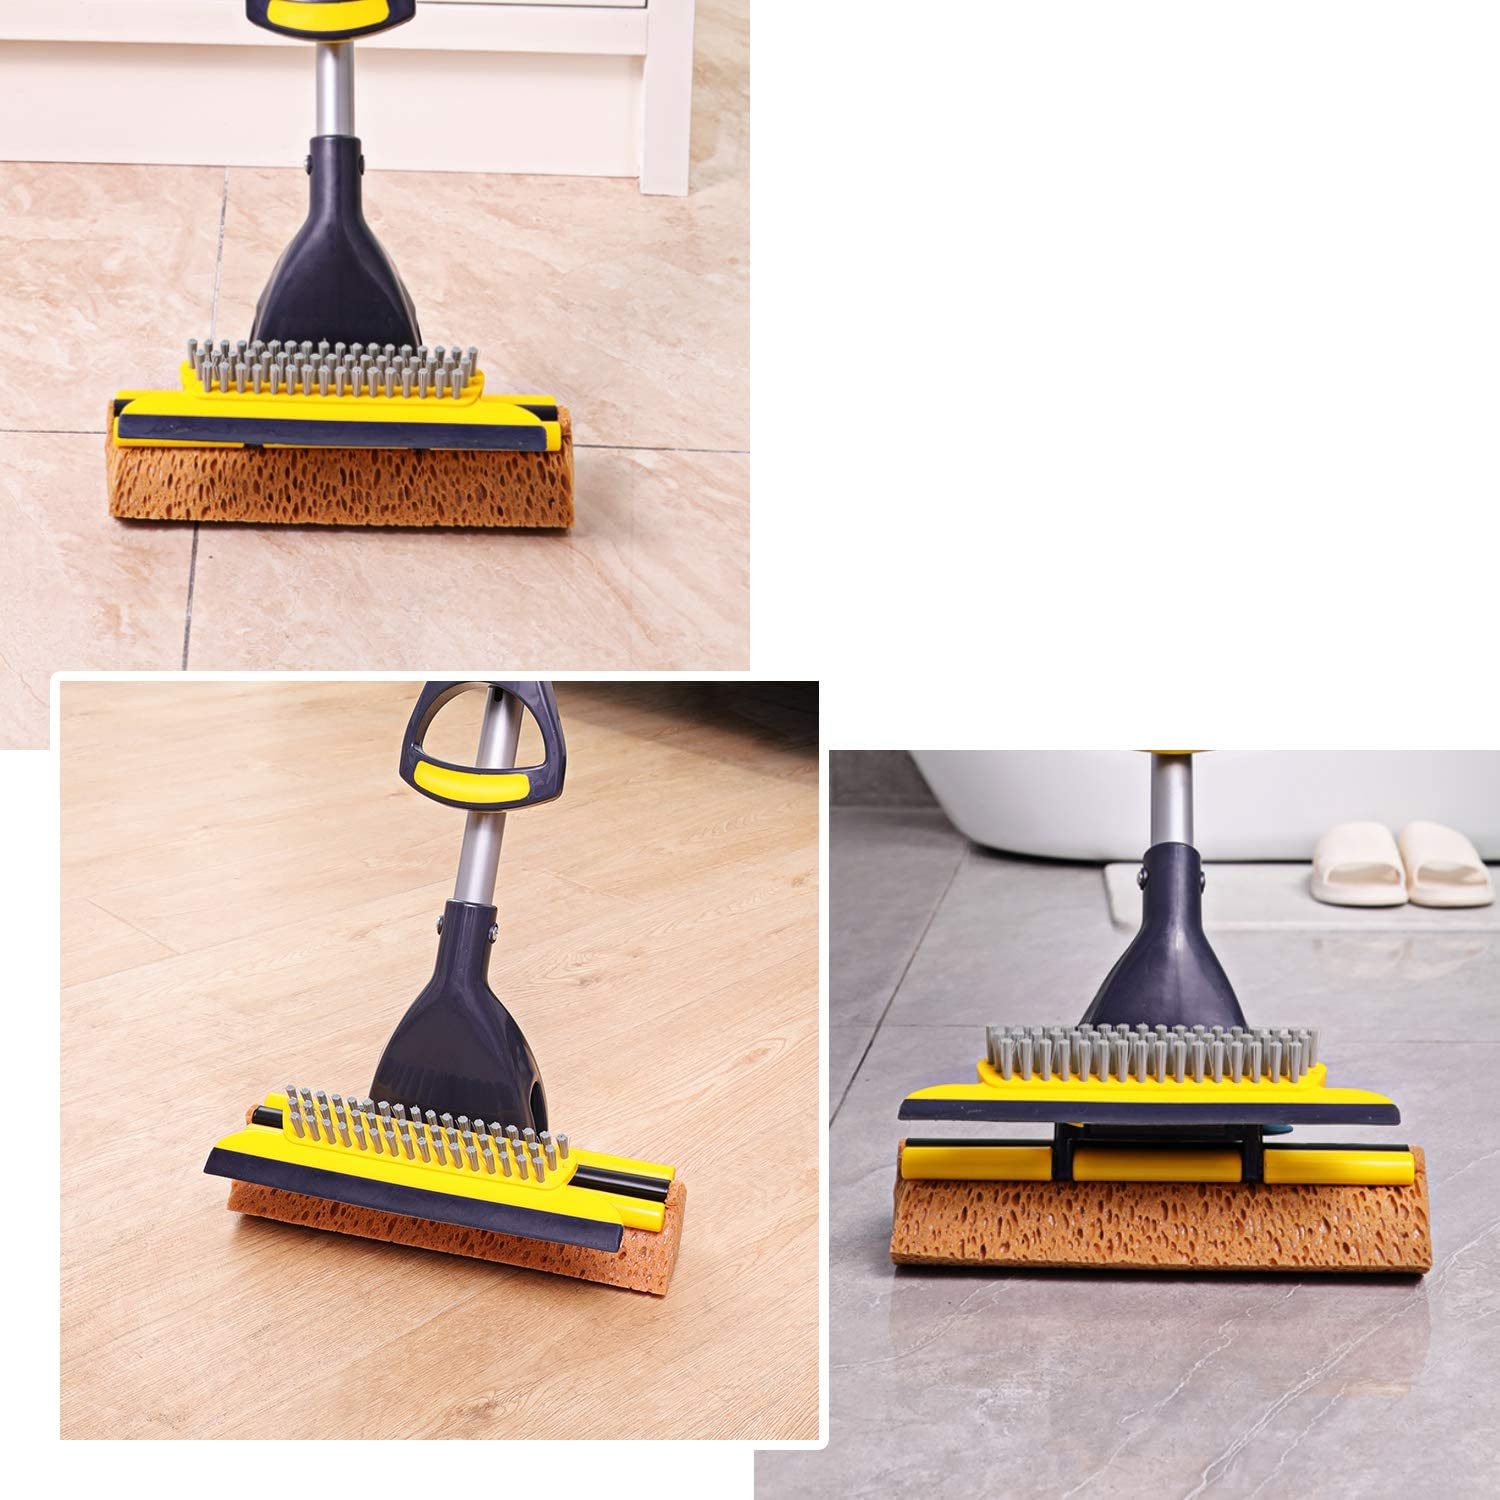 Yocada Sponge Mop Home Commercial Use Tile Floor Bathroom Garage Cleaning with Squeegee and Extendable Telescopic Long Handle 41-53 Inches Easily Dry Wringing: Kitchen & Dining